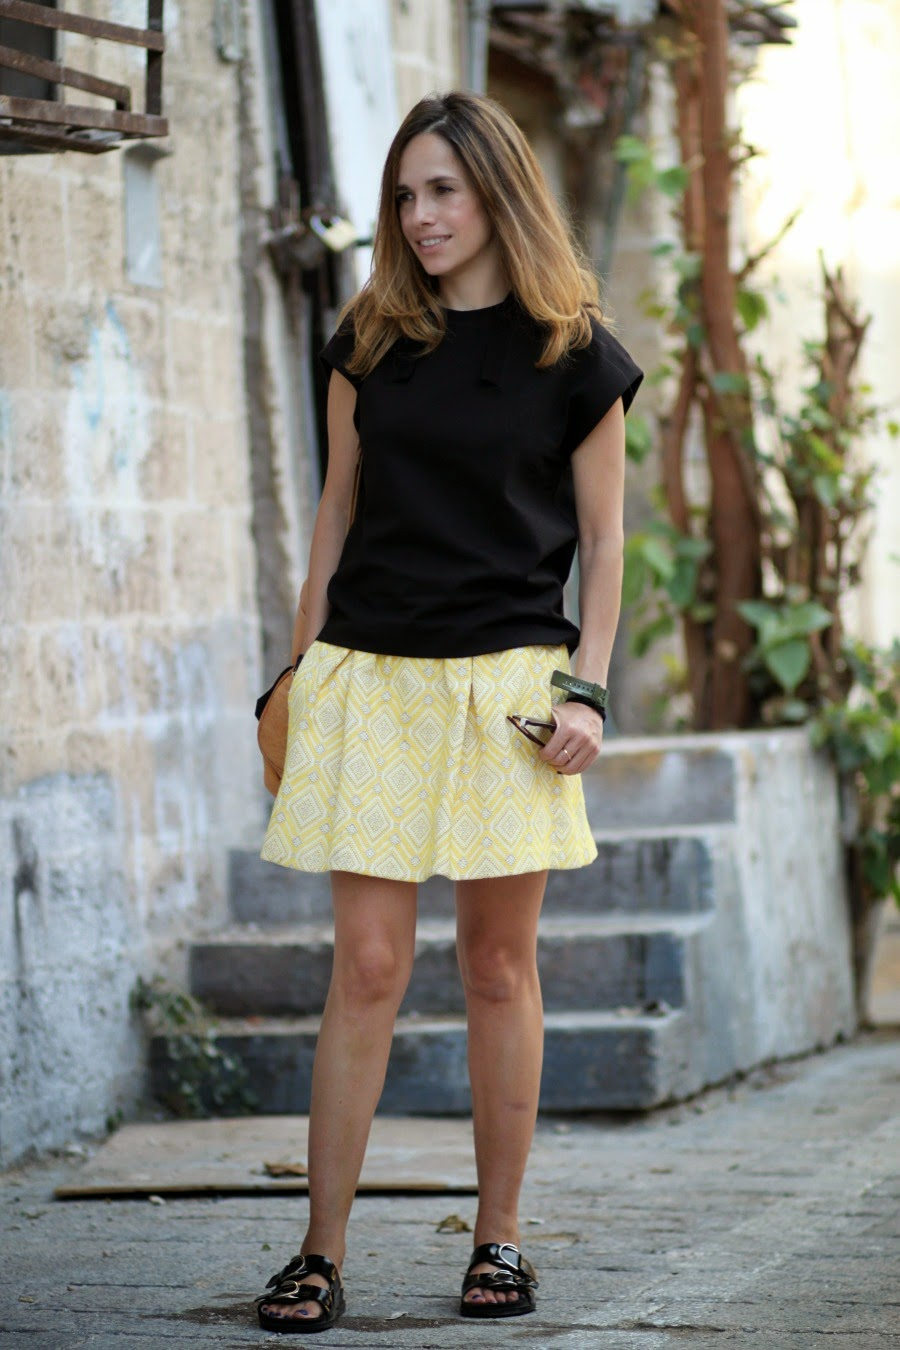 boldcolor, telavivstreetstyle, yellow,skirt,outfit,match,look,pattern,fashioblog,אופנה, בלוגאופנה,